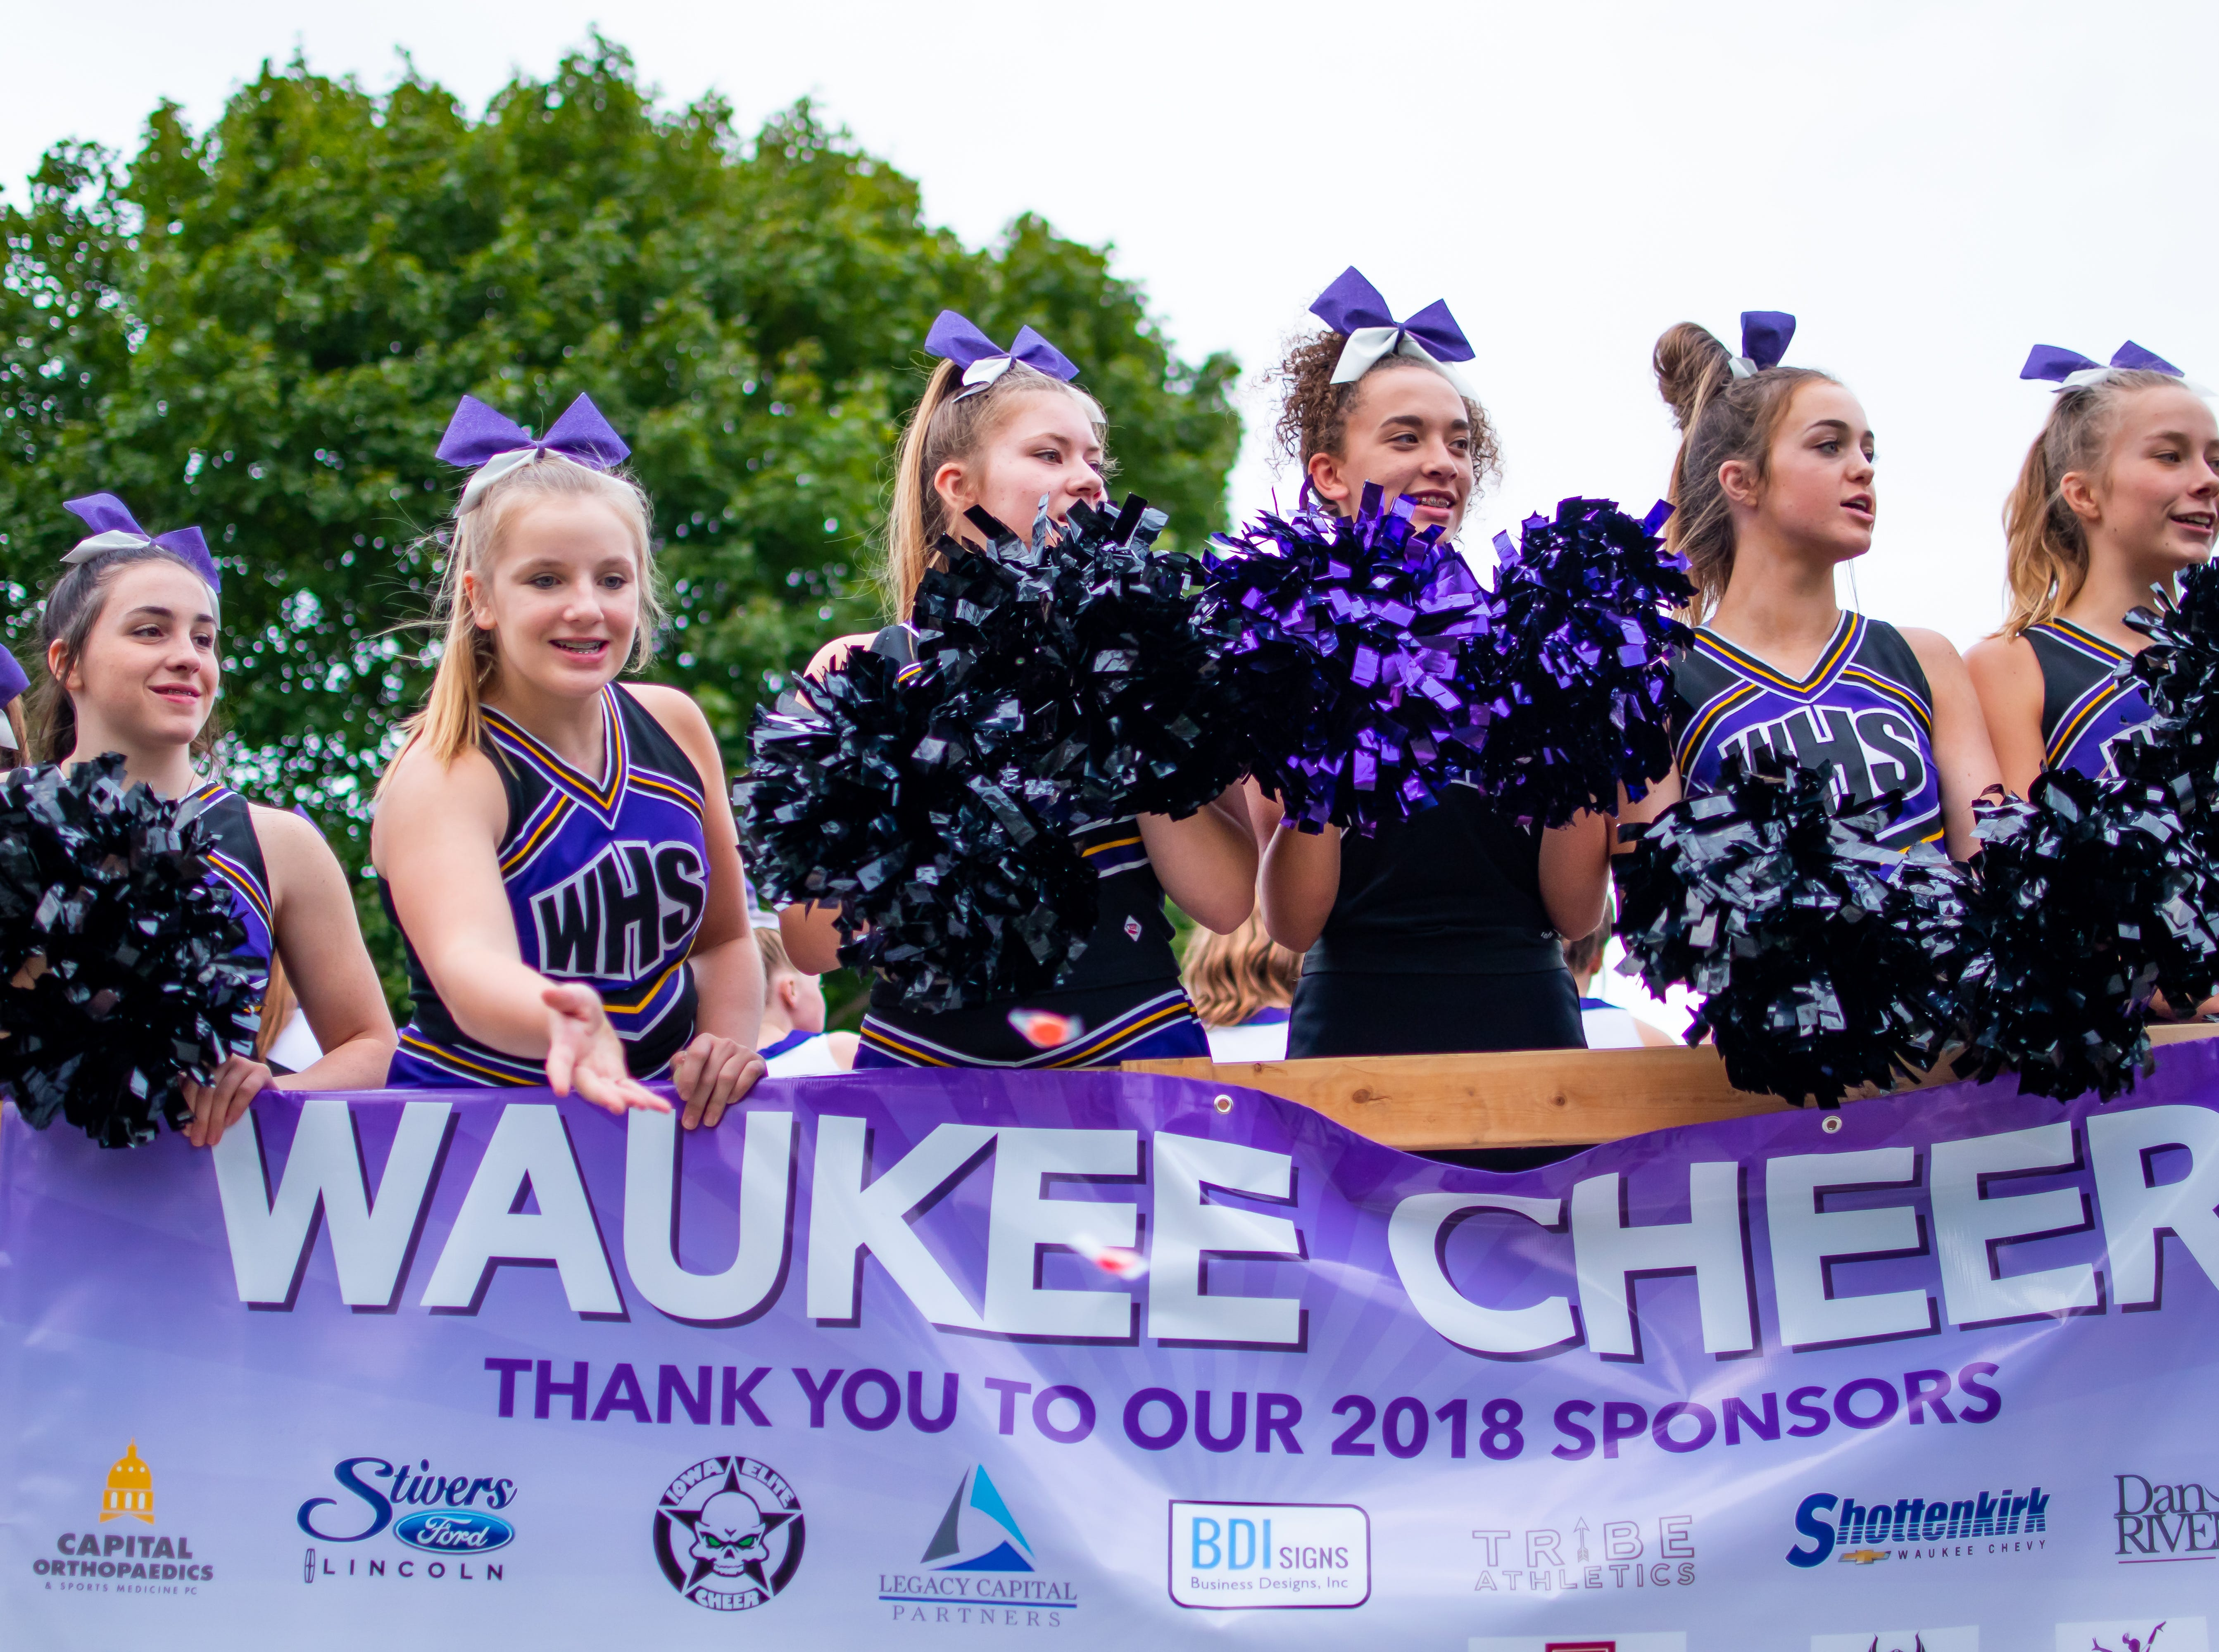 Waukee cheerleaders perform at the Waukee Homecoming Parade on Thursday, September 27, 2018 in Waukee.